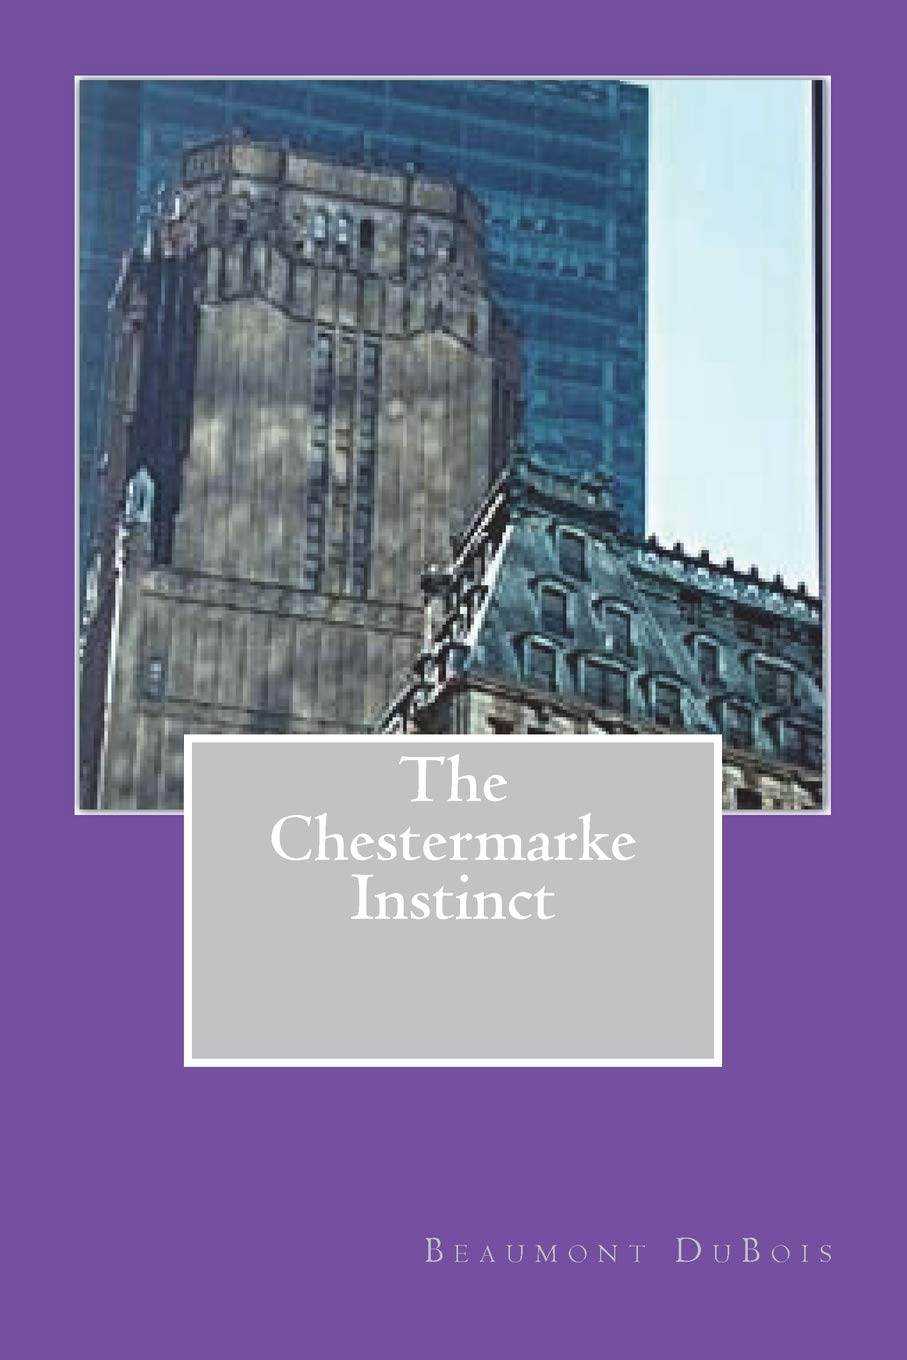 Download The Chestermarke Instinct: What Price Embezzelement??? pdf